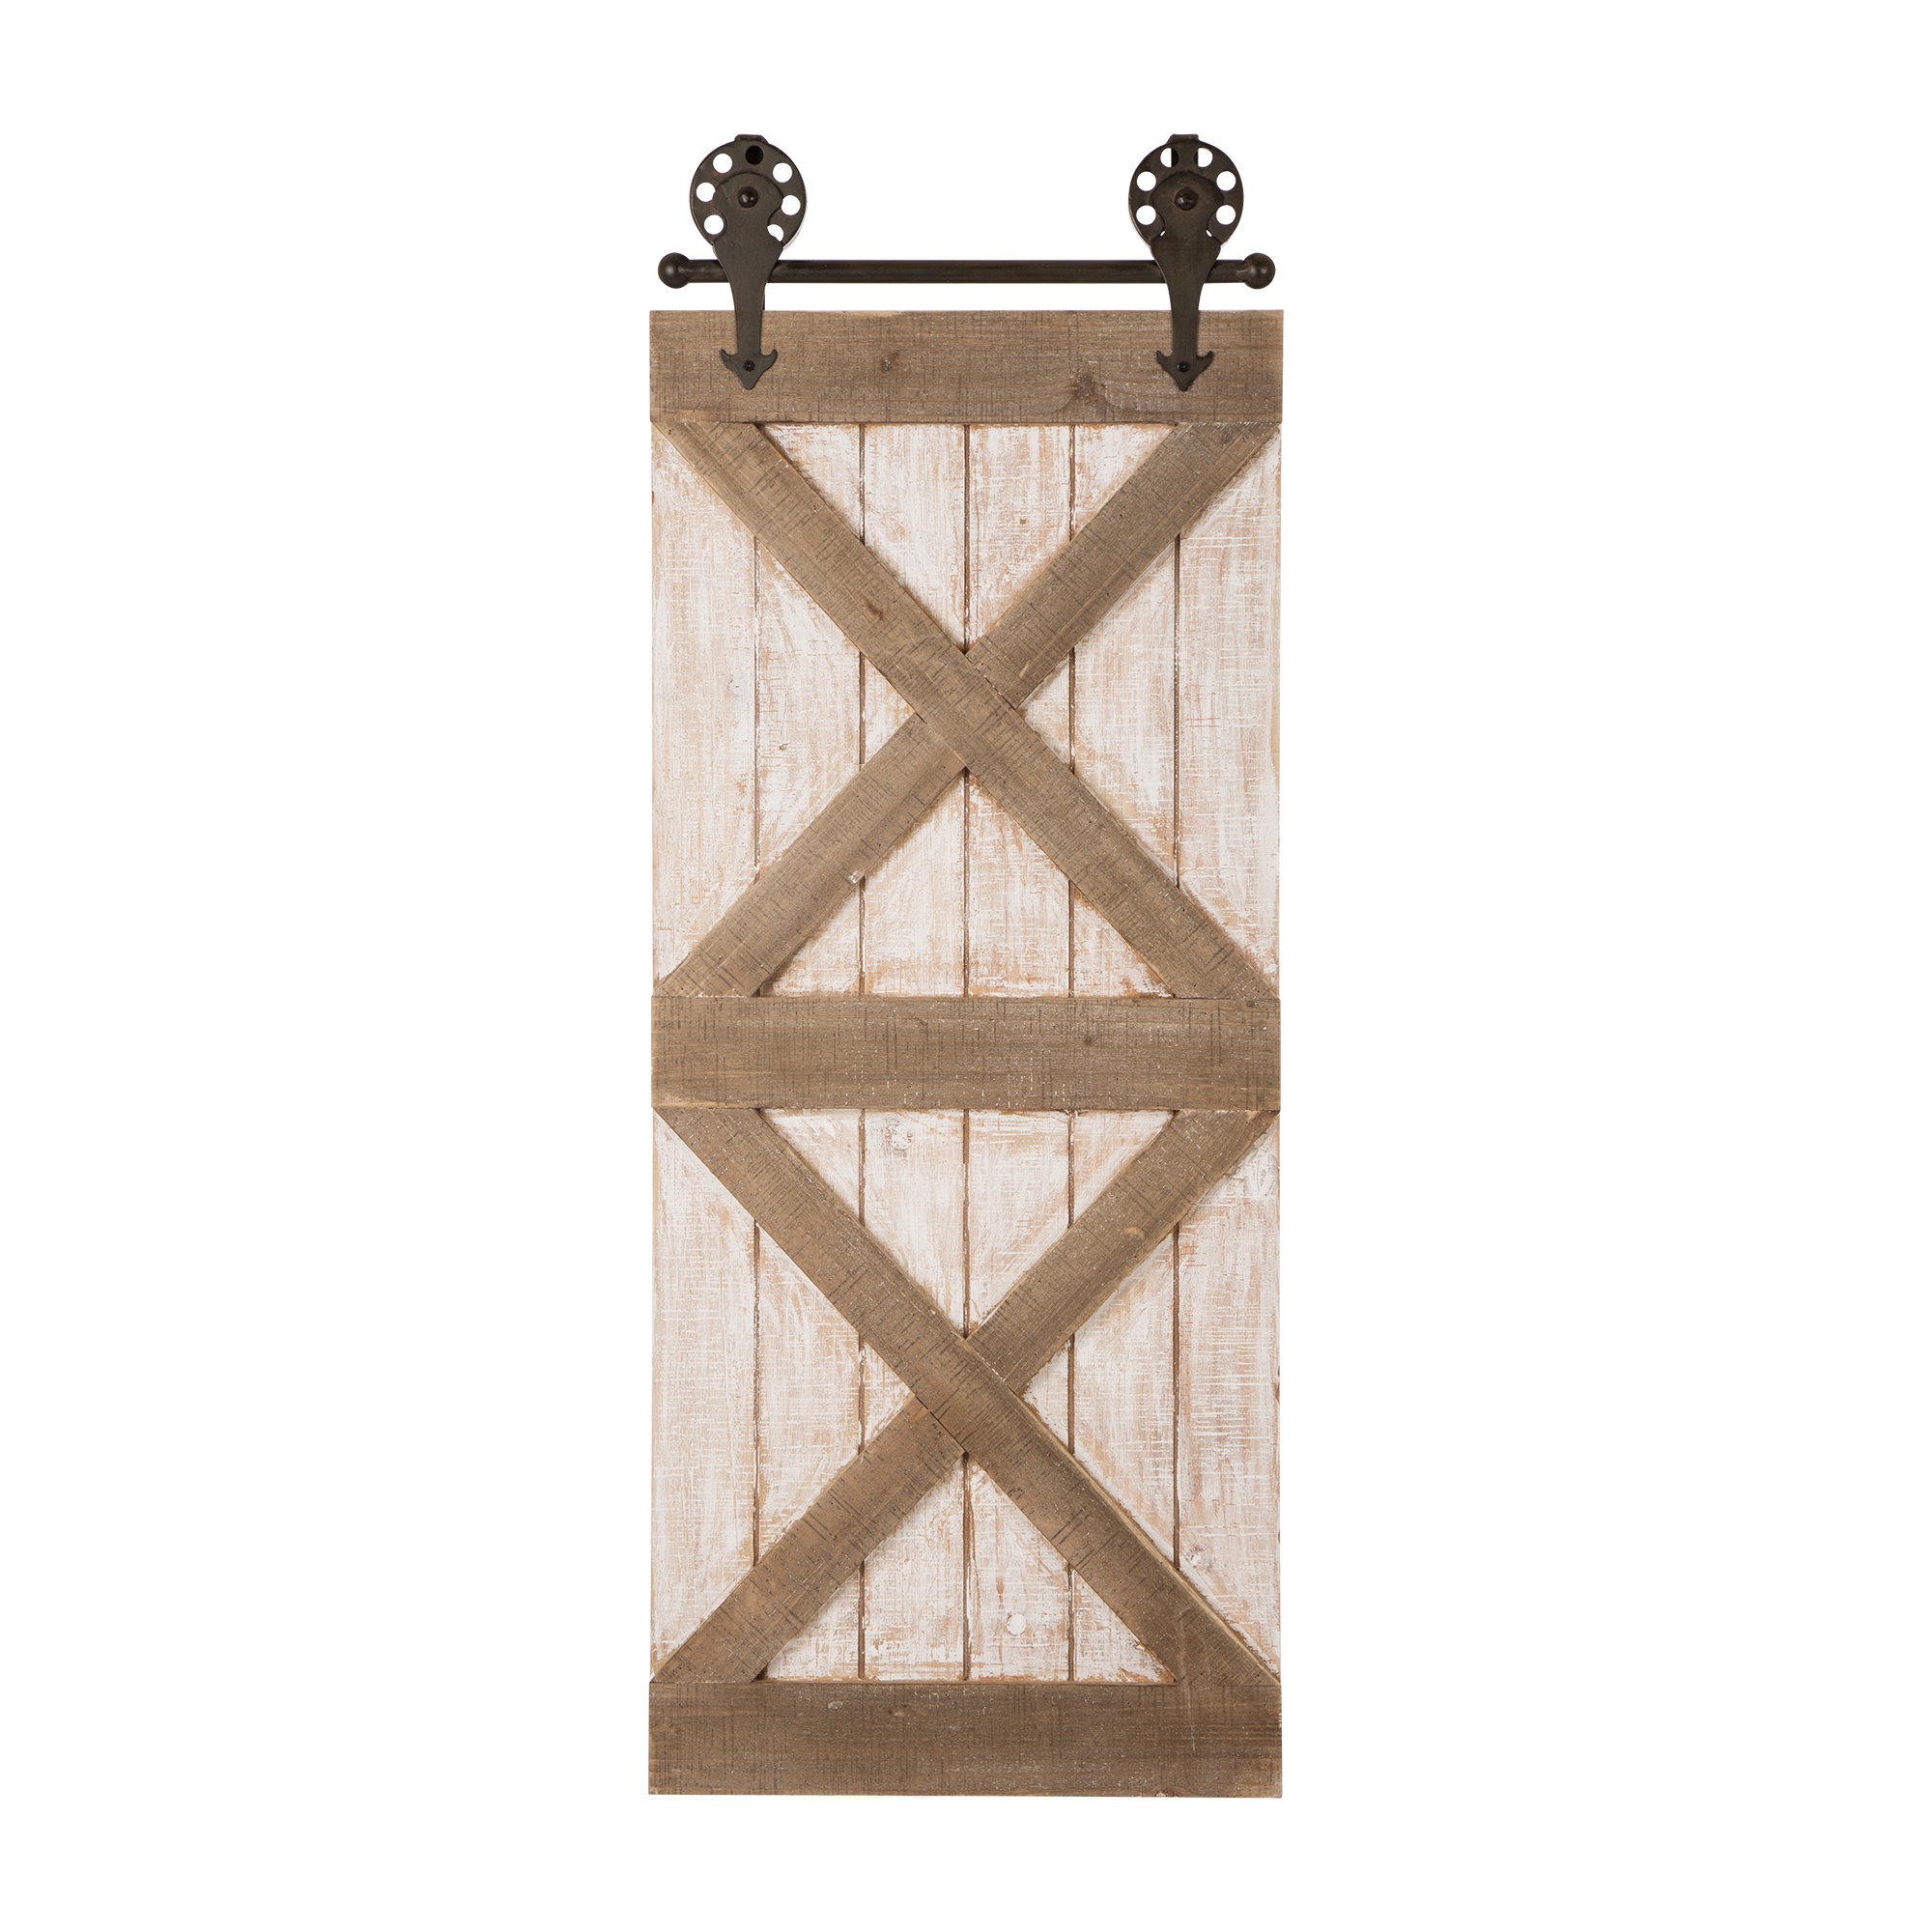 Barn Door Wall Décor with regard to Ornamental Wood and Metal Scroll Wall Decor (Image 5 of 30)